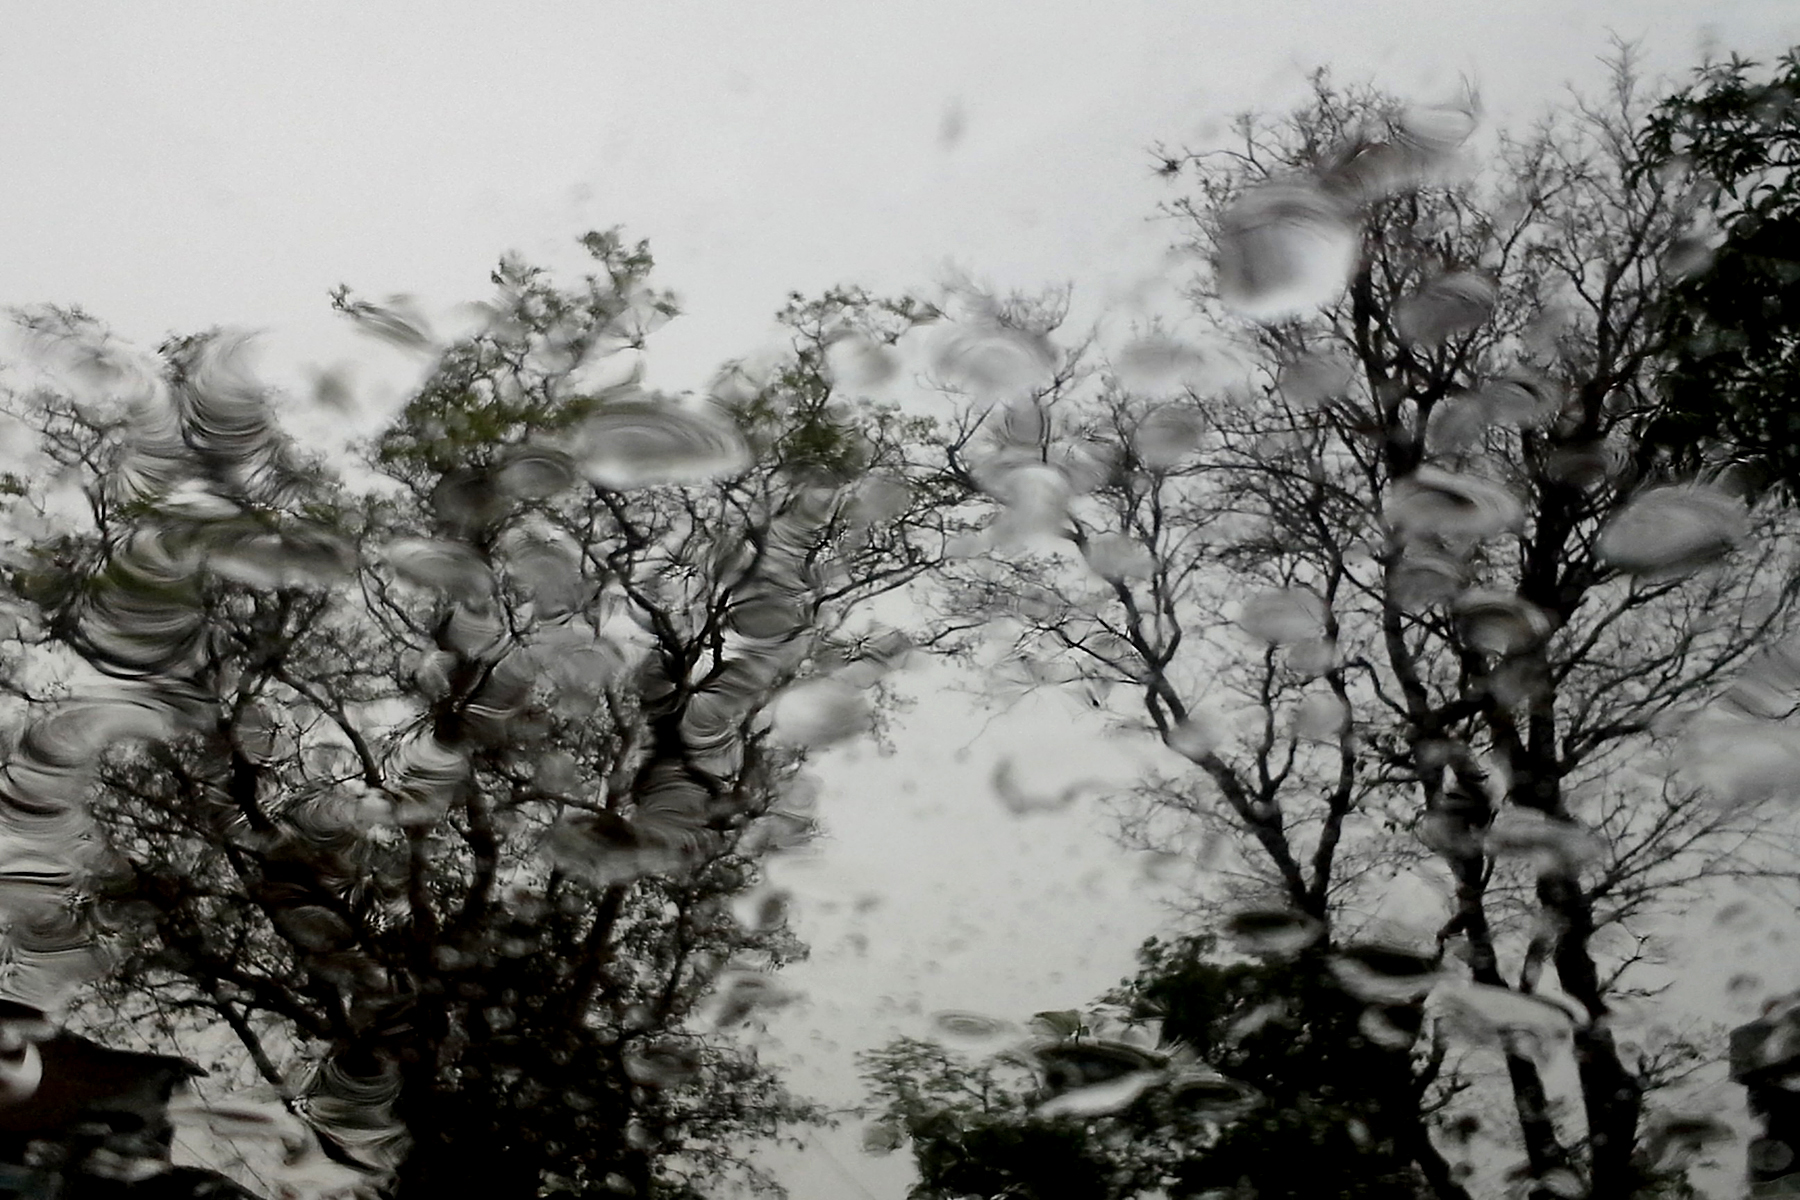 I was driving my car when its starts pouring. I found very interesting patterns of trees through my wind shield. Water drops on the glass adds the abstract feeling of the overall scene.